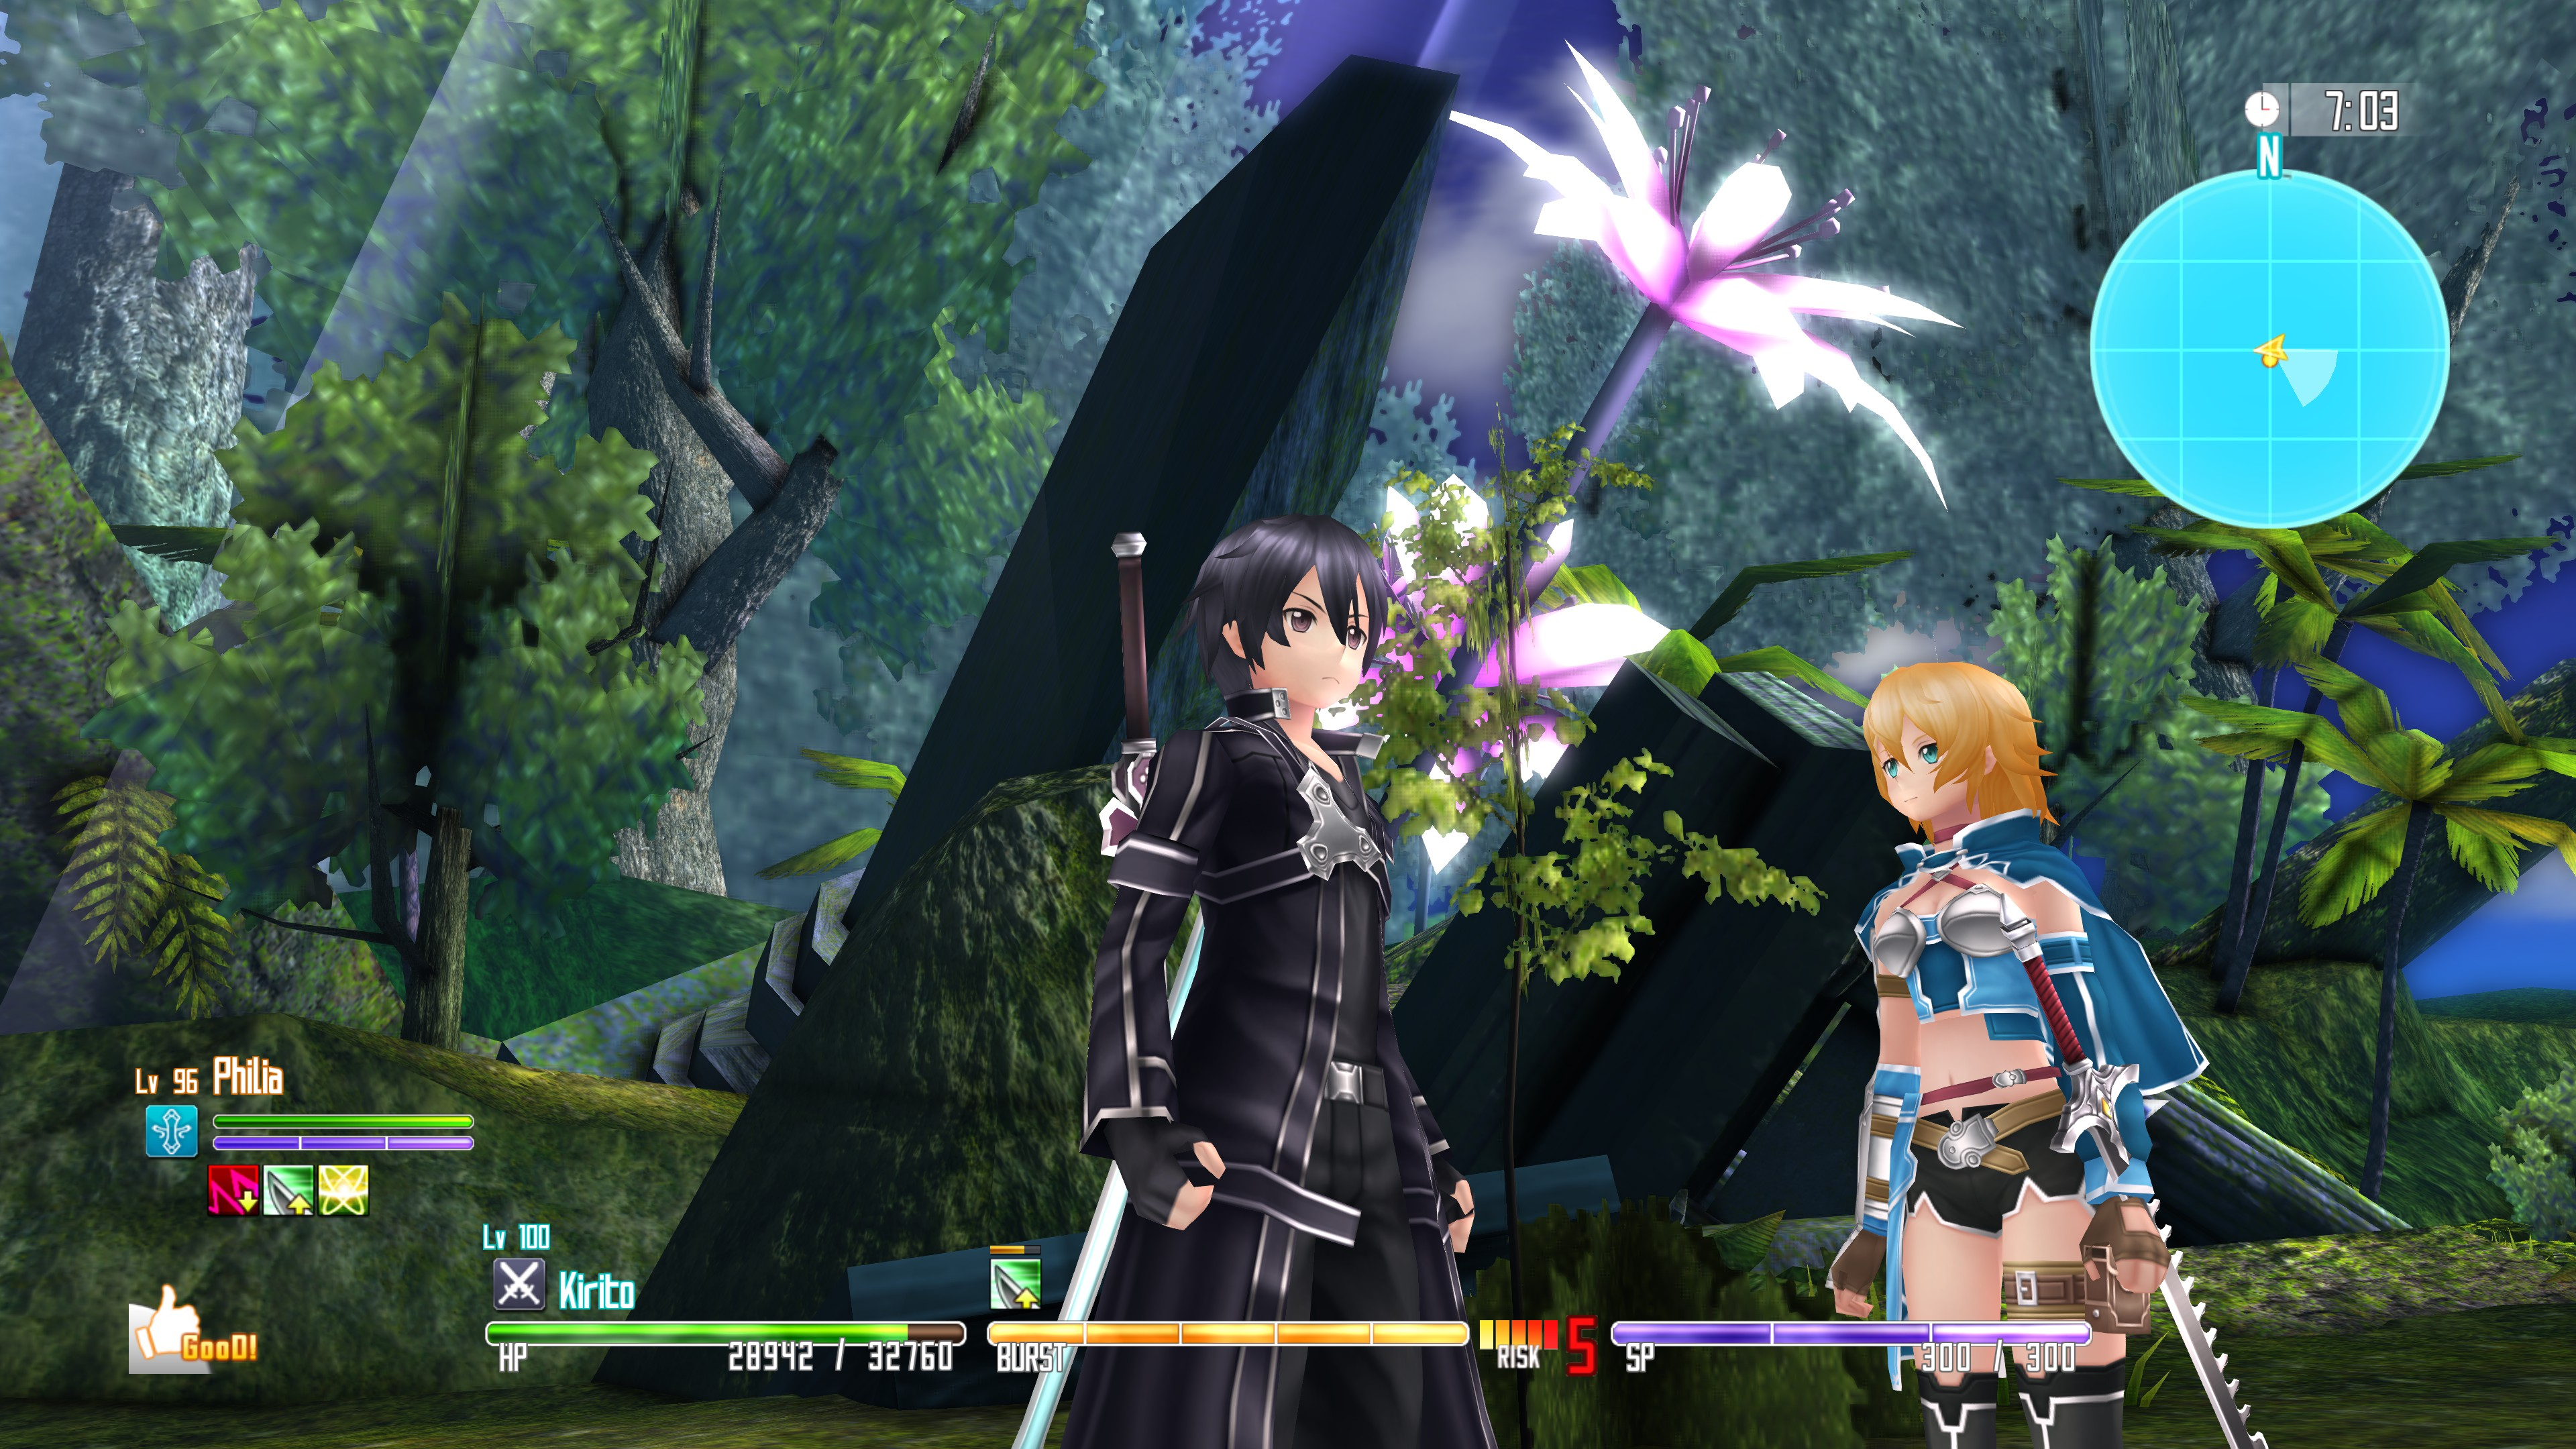 Sword Art Online Re: Hollow Fragment available on Steam on March 23